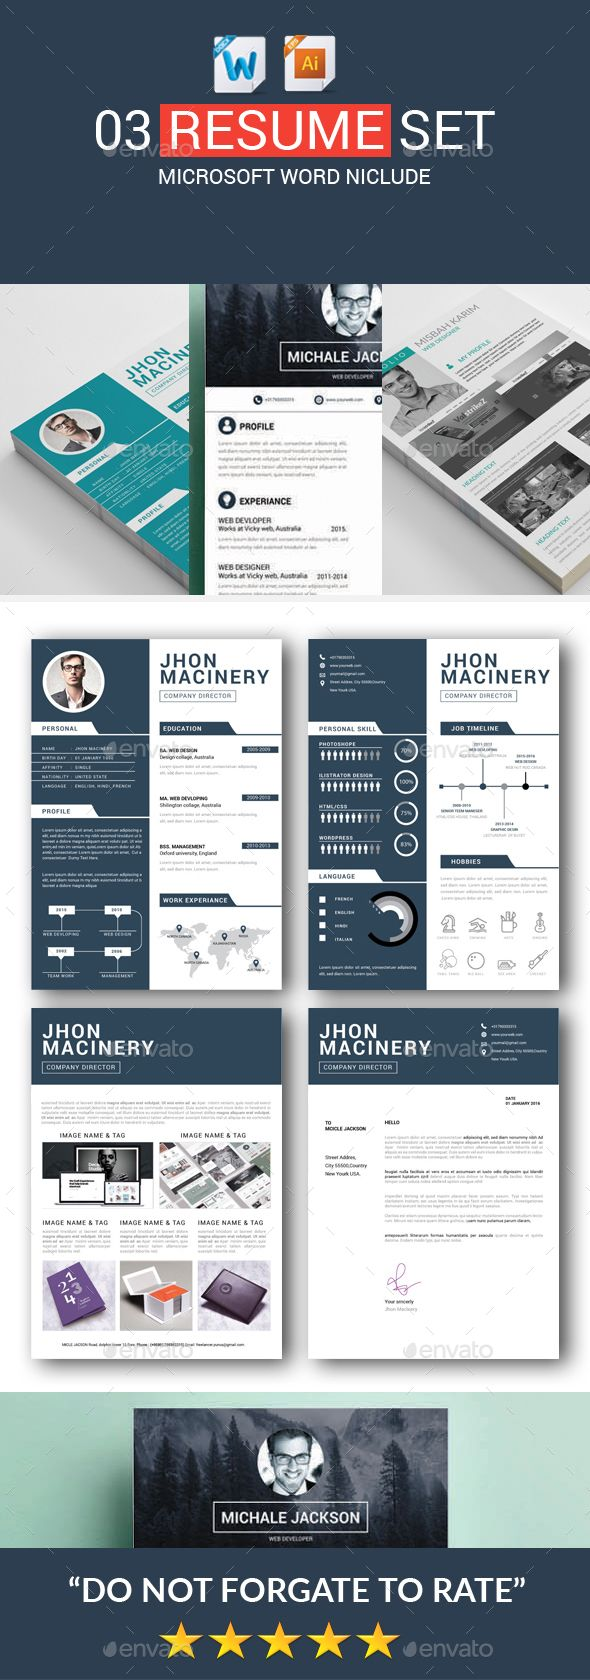 Resume templates bundle psd vector eps ai ms word resume templates bundle psd vector eps ai ms word yelopaper Gallery